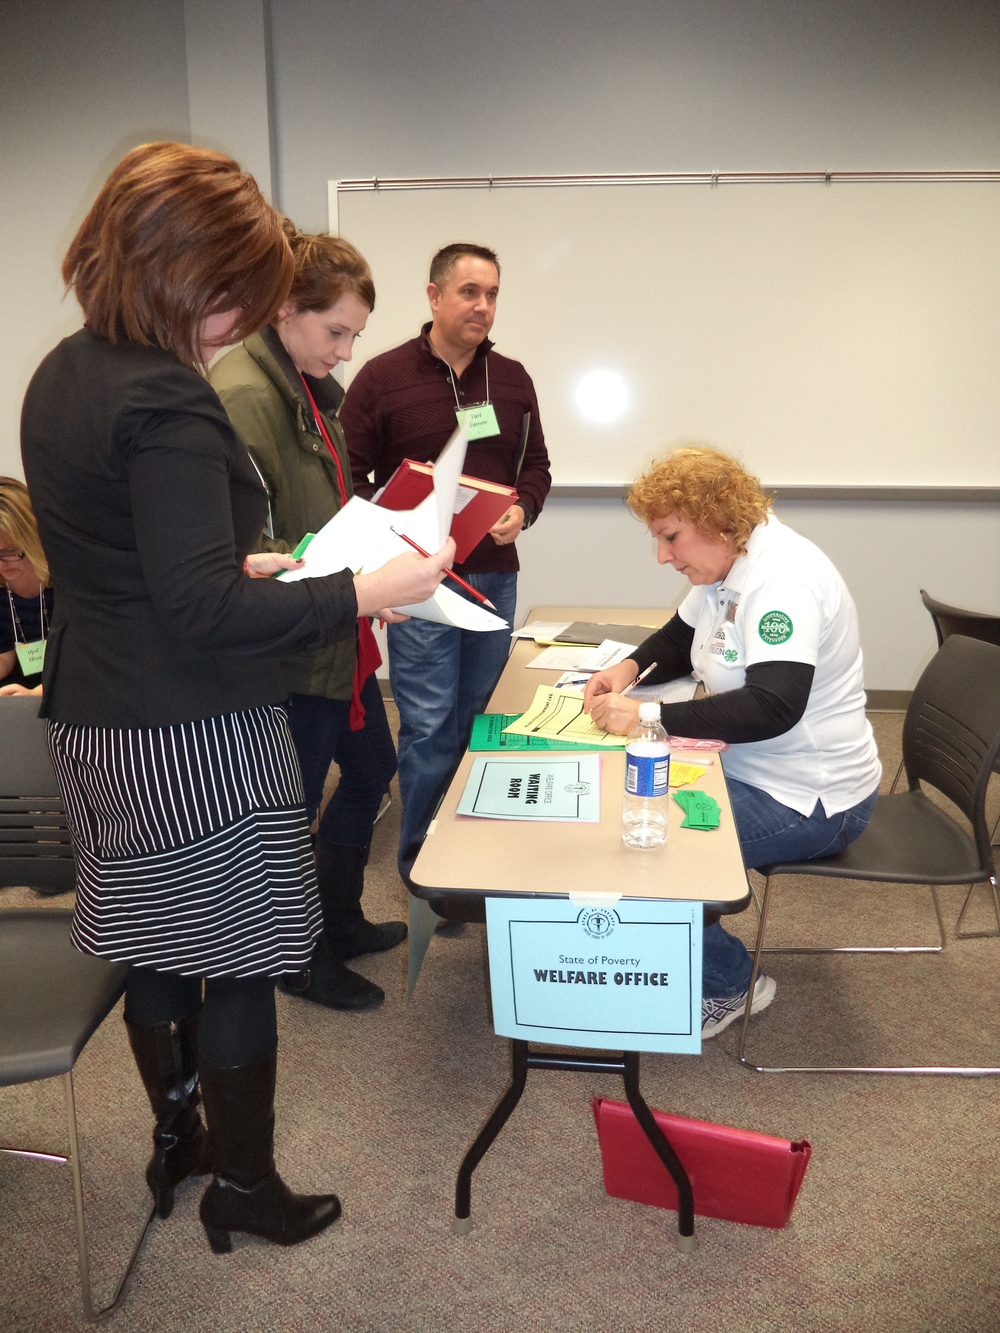 Poverty Simulation-Welfare Office-Tammy Peterson, Alex, Eric, Heidi.JPG